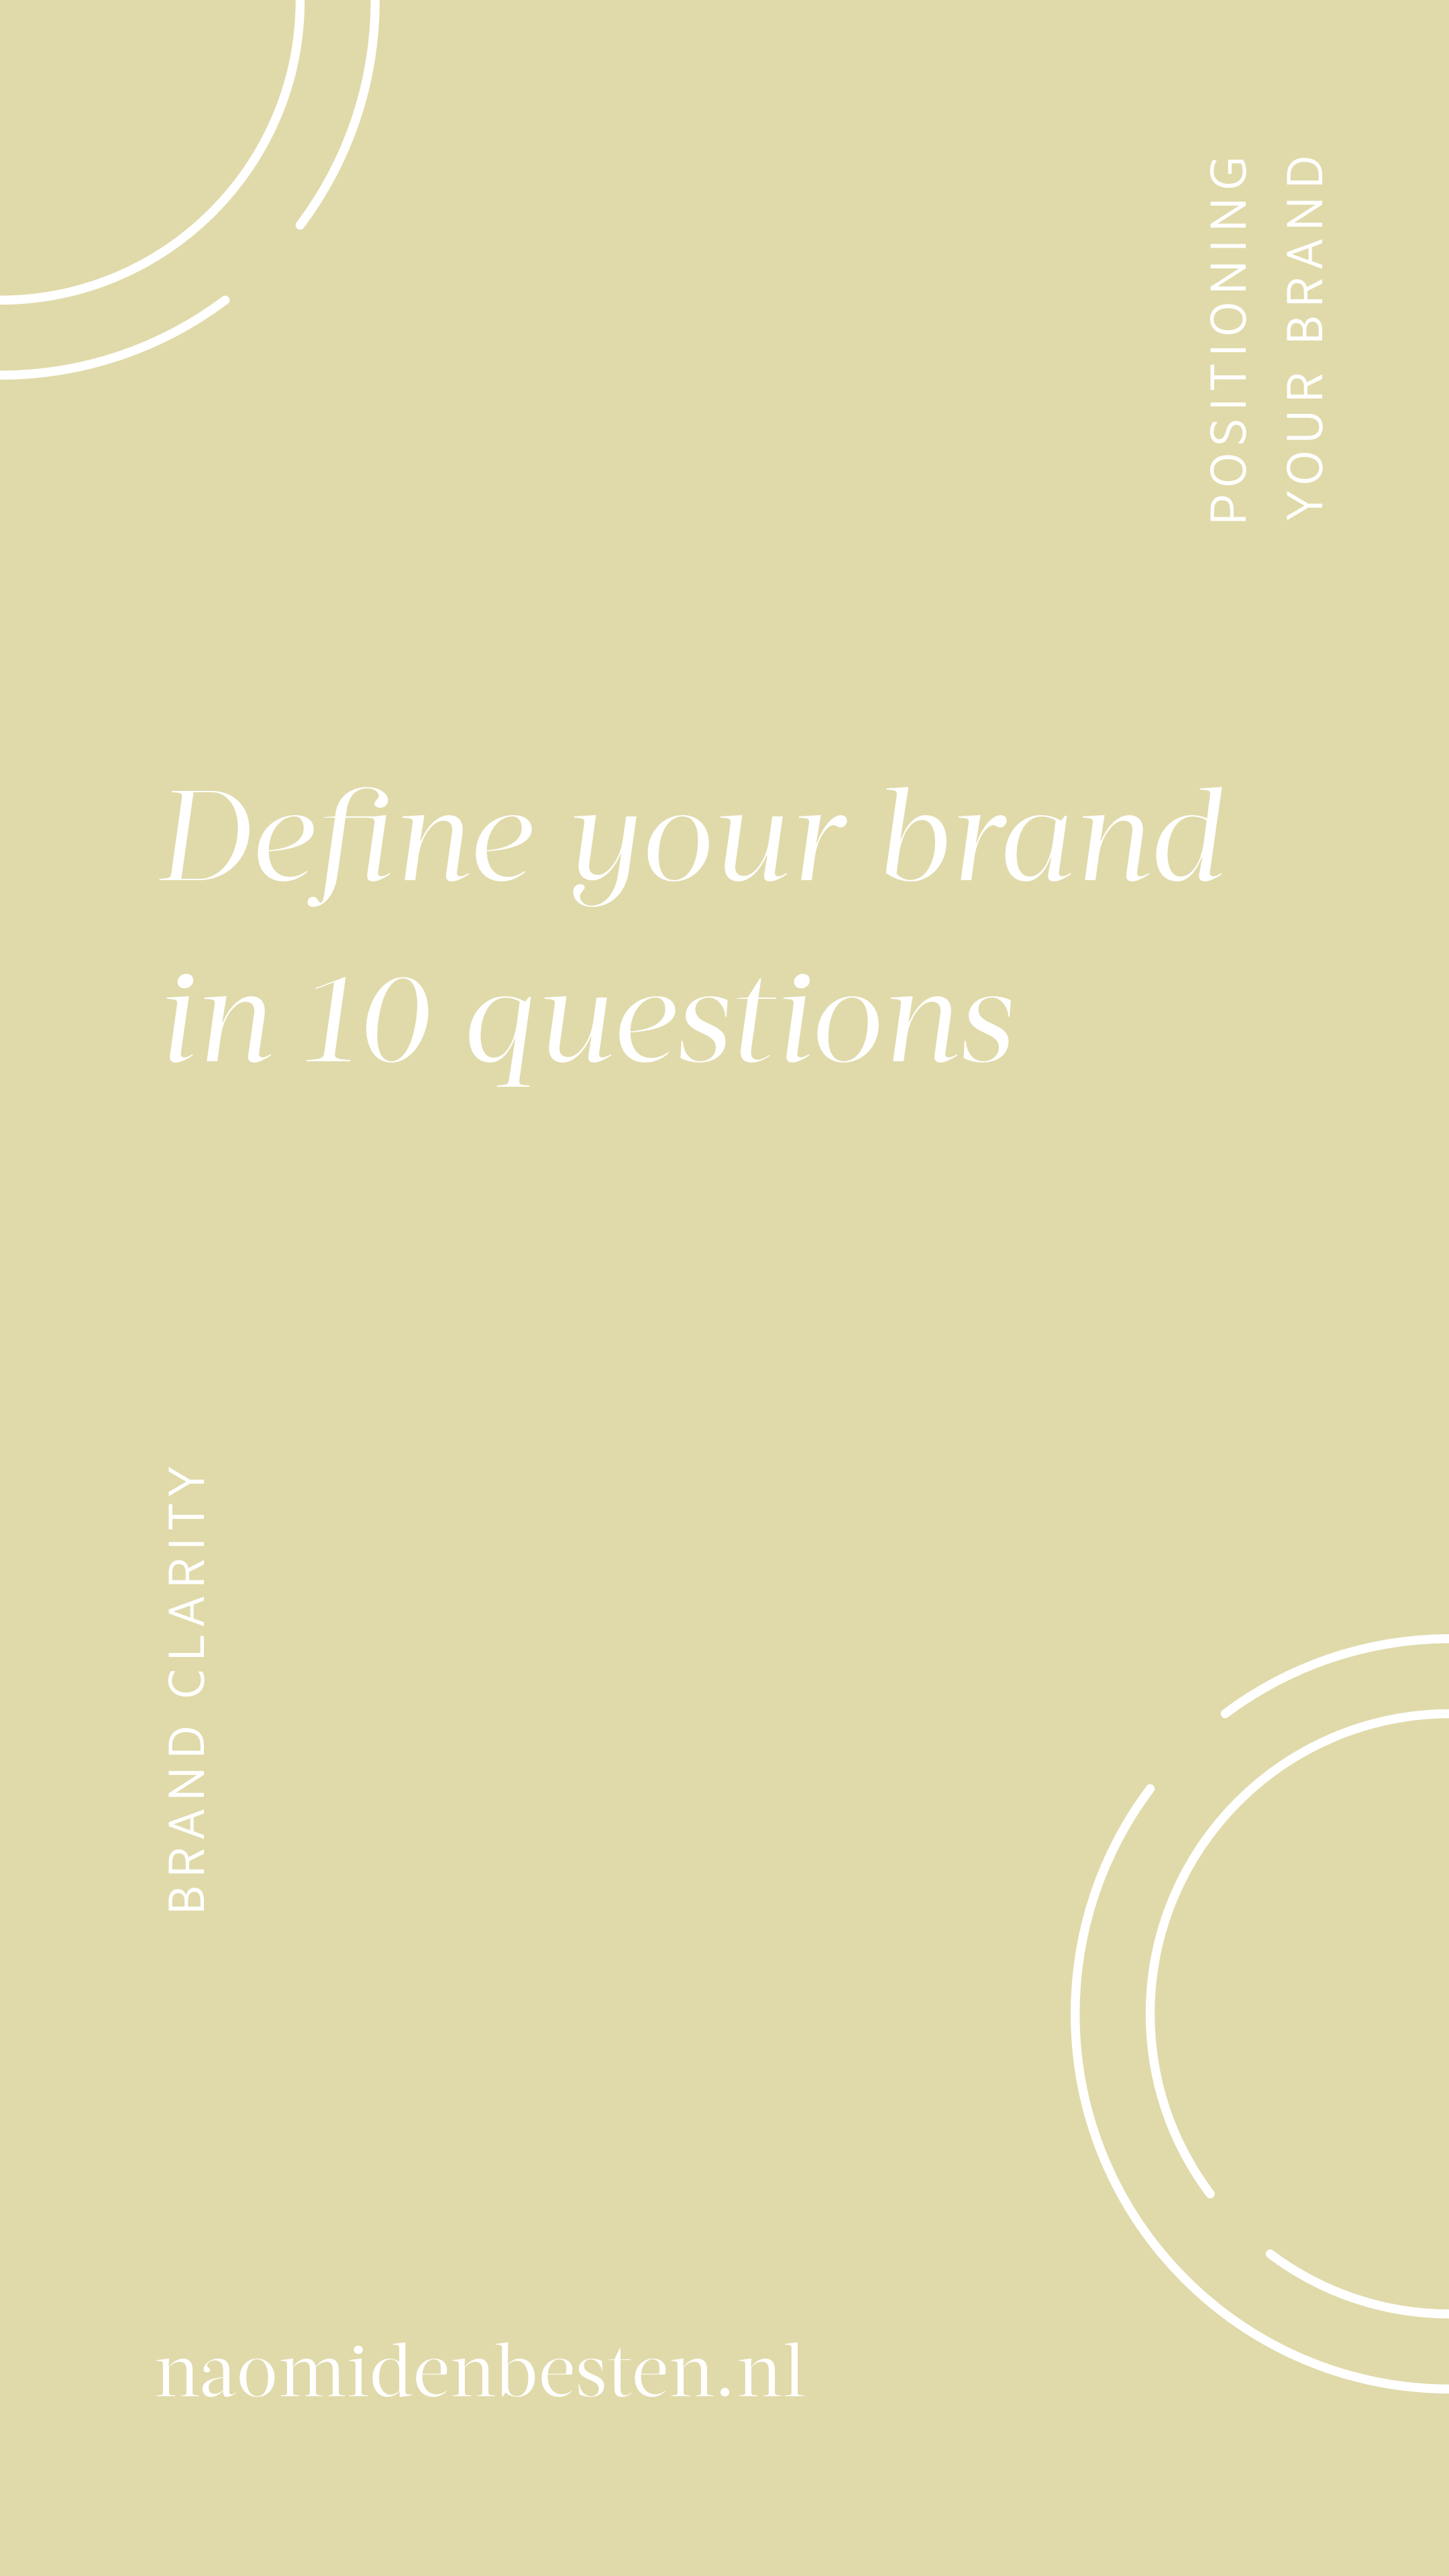 Define your brand in 10 questions.jpg